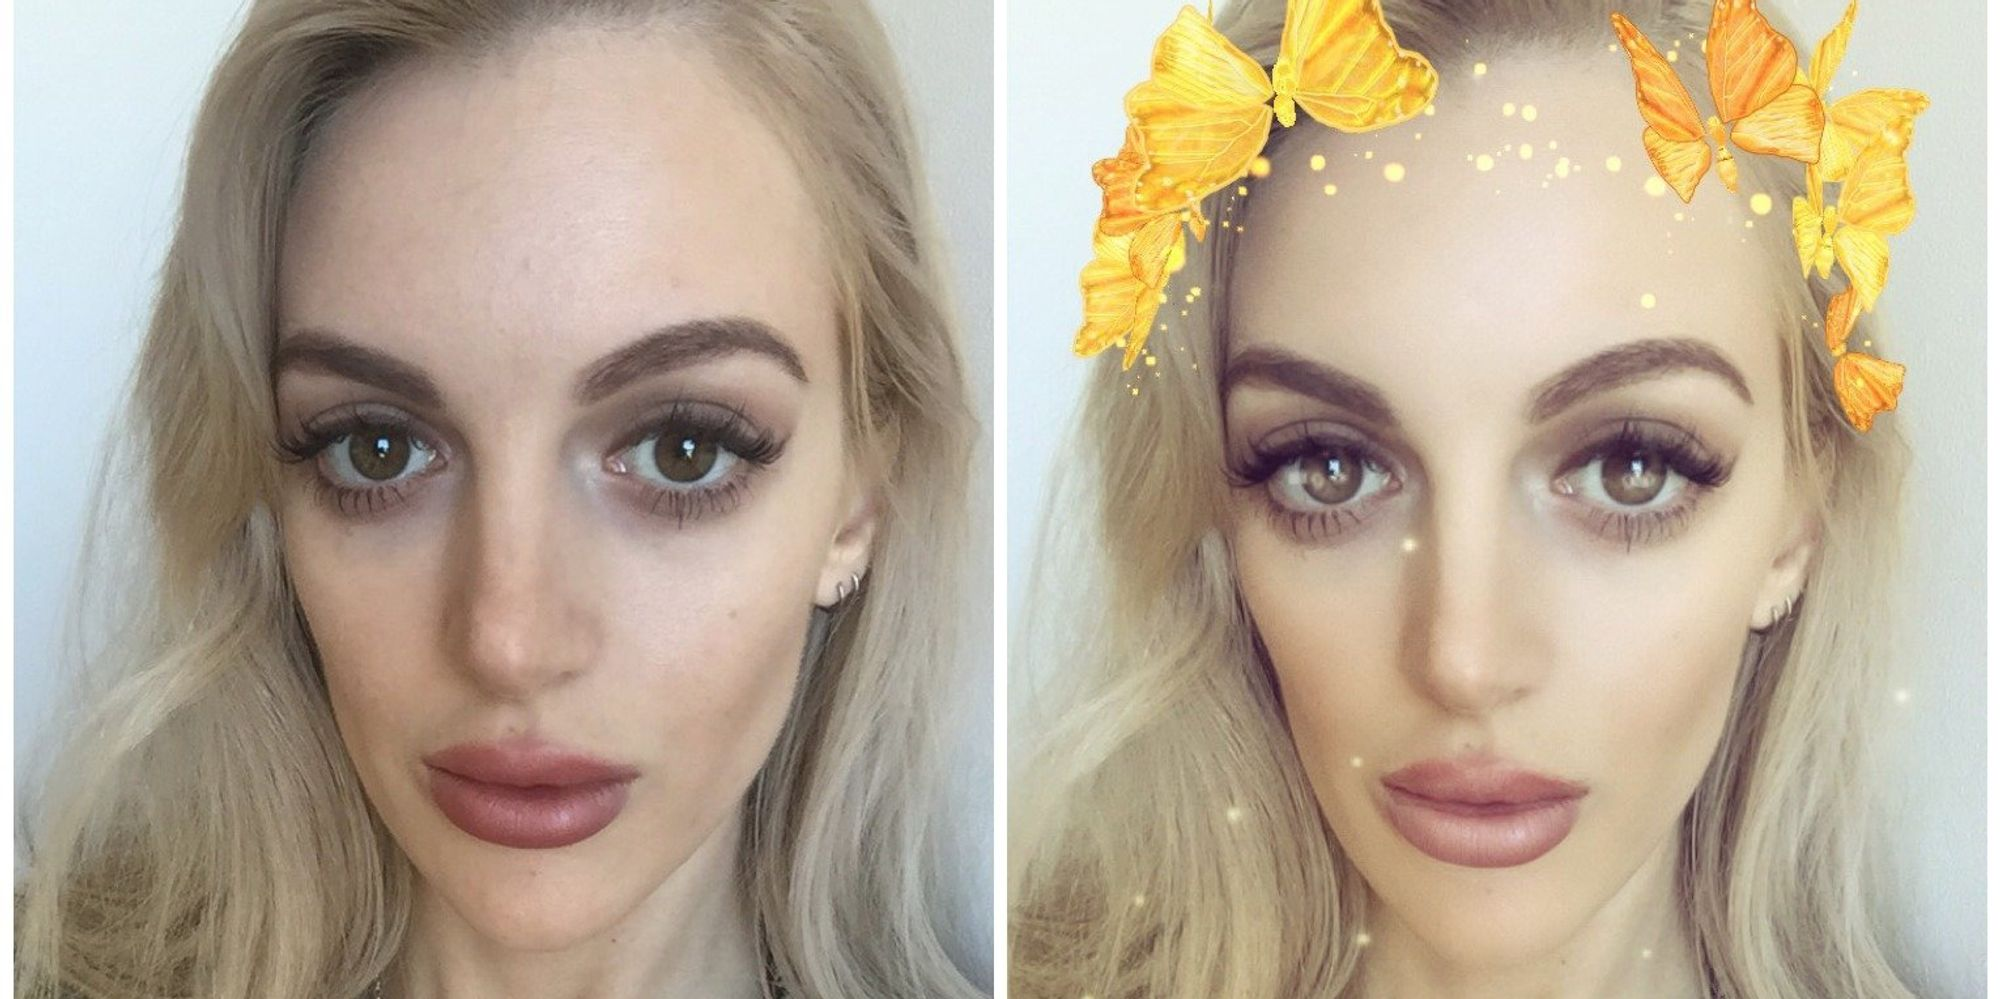 Snapchat Beauty Filters From Plastic Surgery To Body